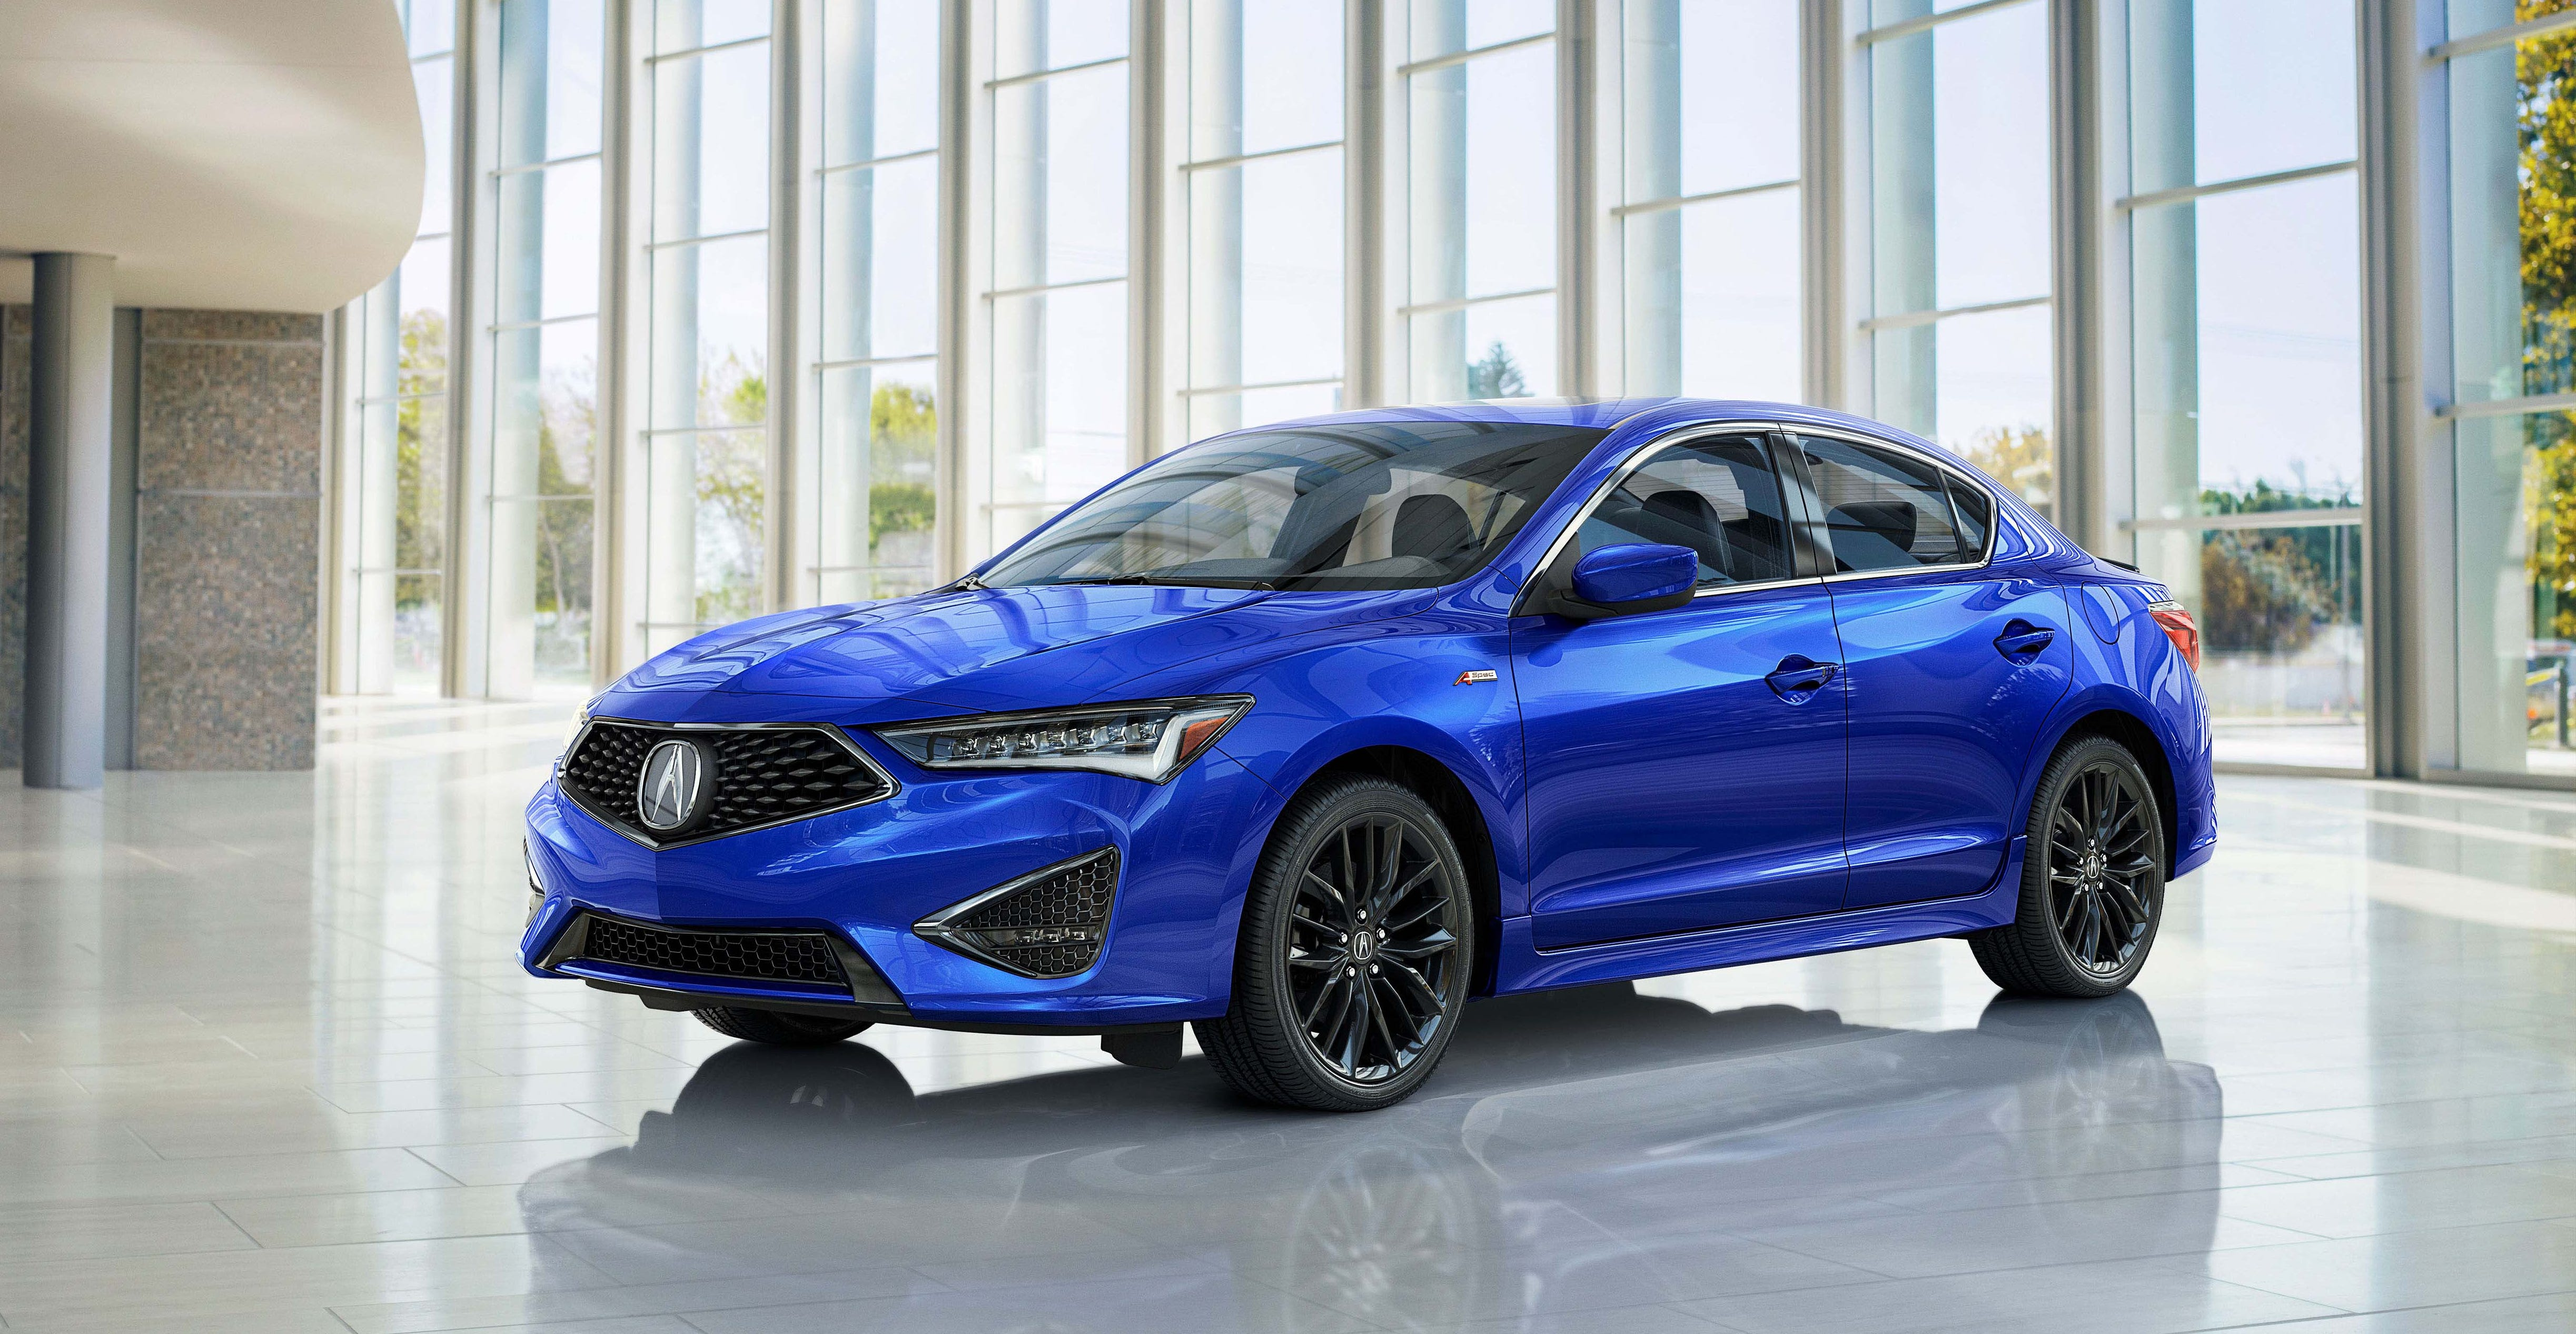 """The refreshed2019 Acura ILX gets the brand's signature Diamond Pentagon grille, """"Jewel Eye"""" LED headlightsand more-sculpted wheels."""